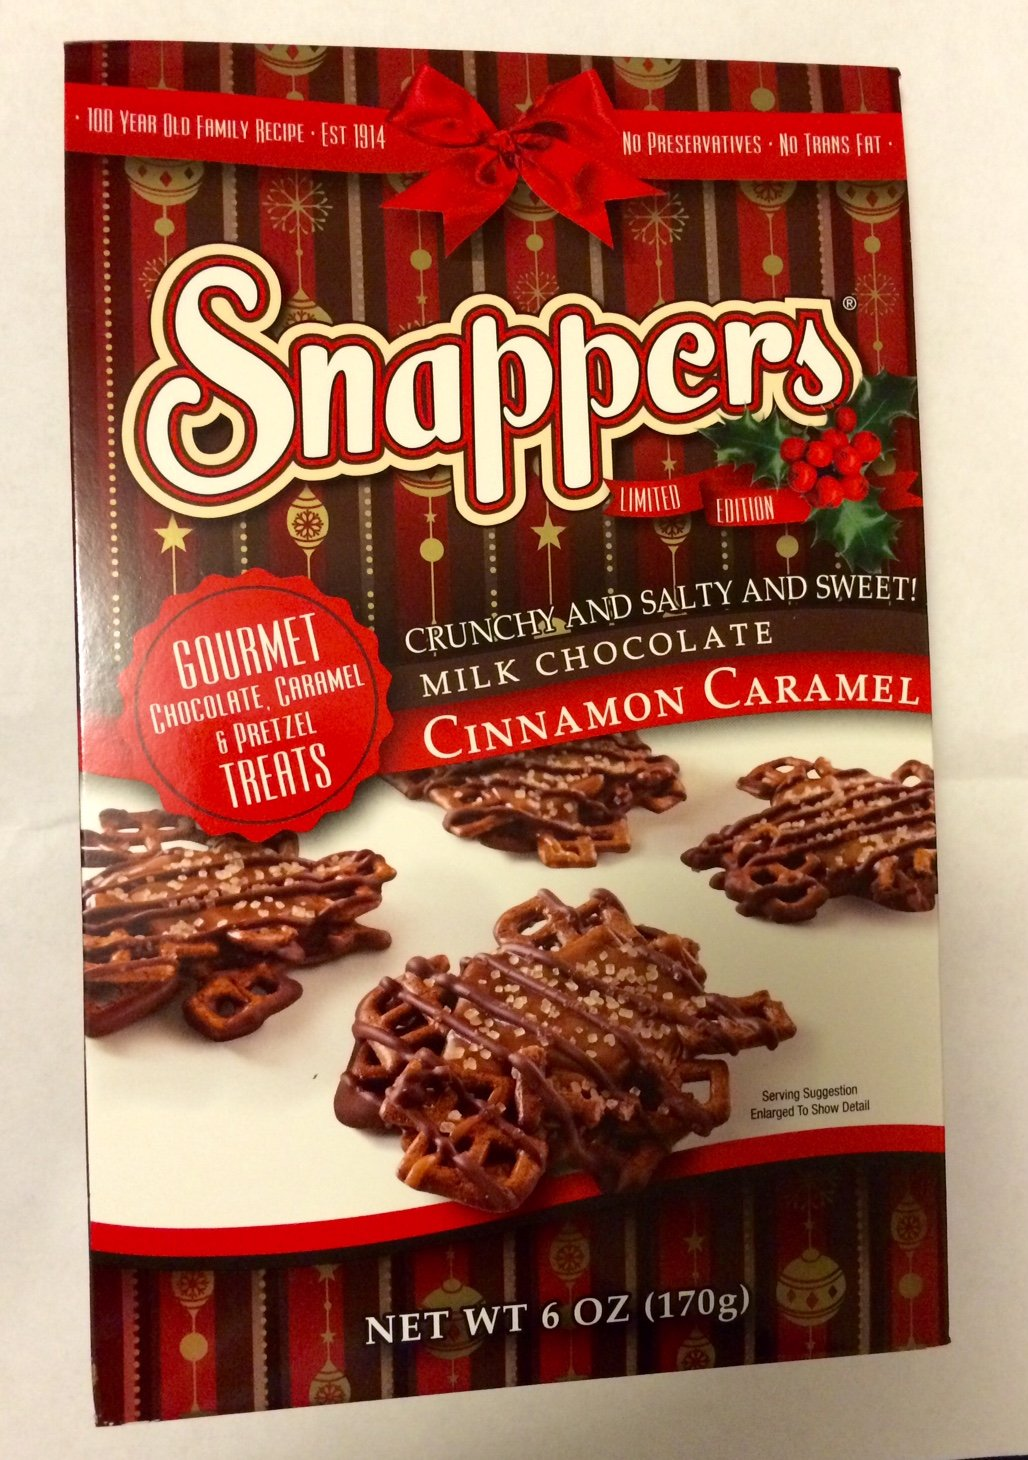 Amazon.com : Snappers Crunchy and Salty and Sweet, Gourmet Milk ...